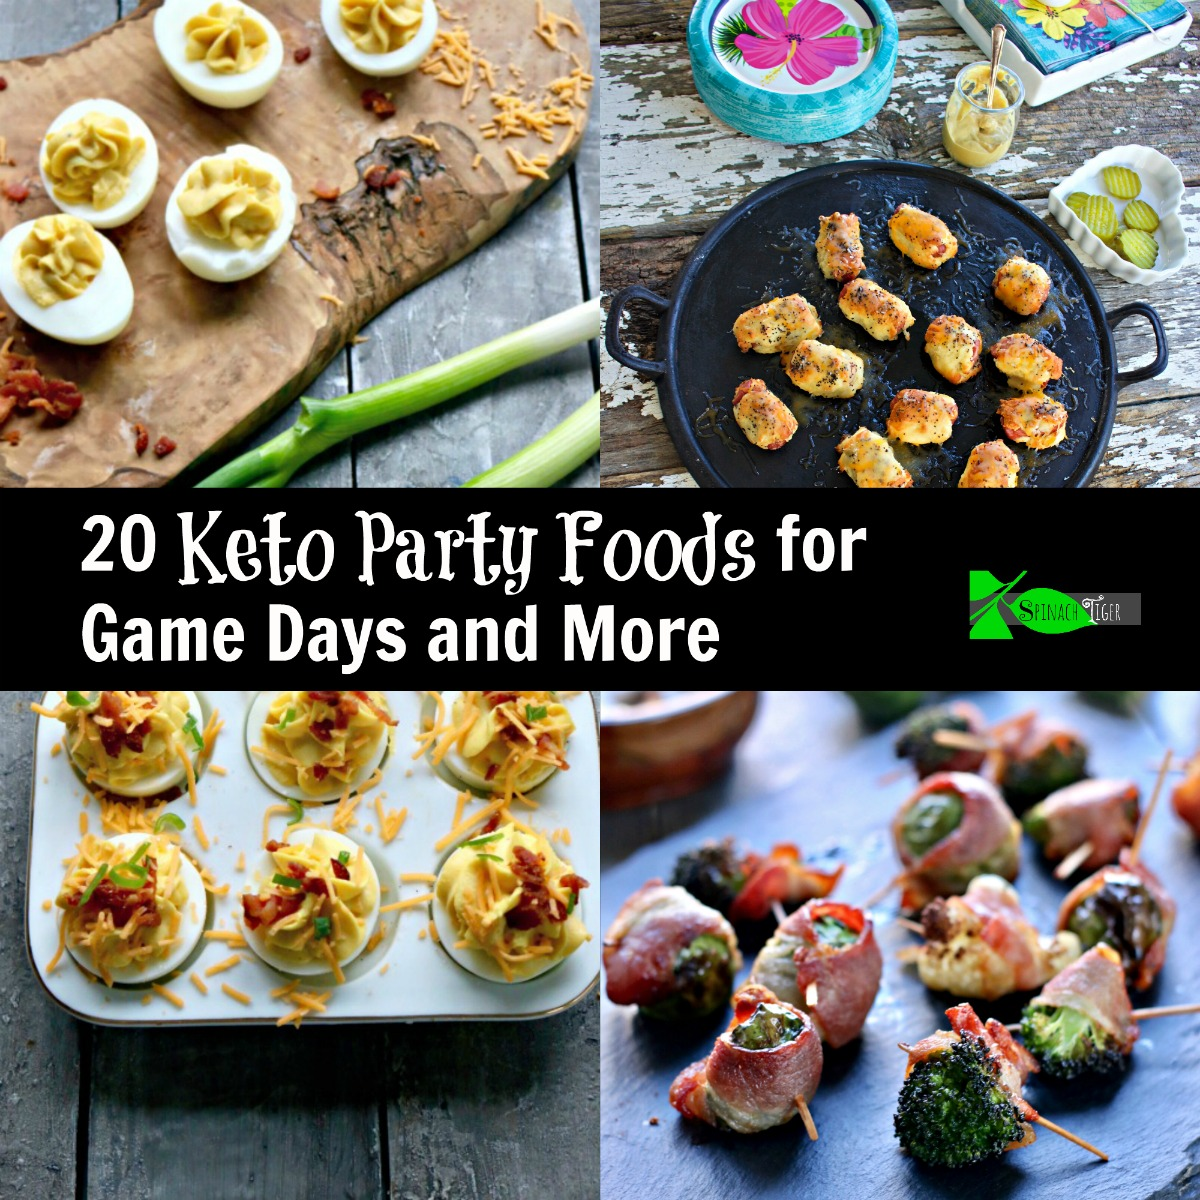 Keto party food ideas, including bacon wrapped chicken bites, veggie bites, deviled eggs, pigs in the blanket and grain free tortillas. Much more #ketoappetizers #ketopartyfood via @angelaroberts